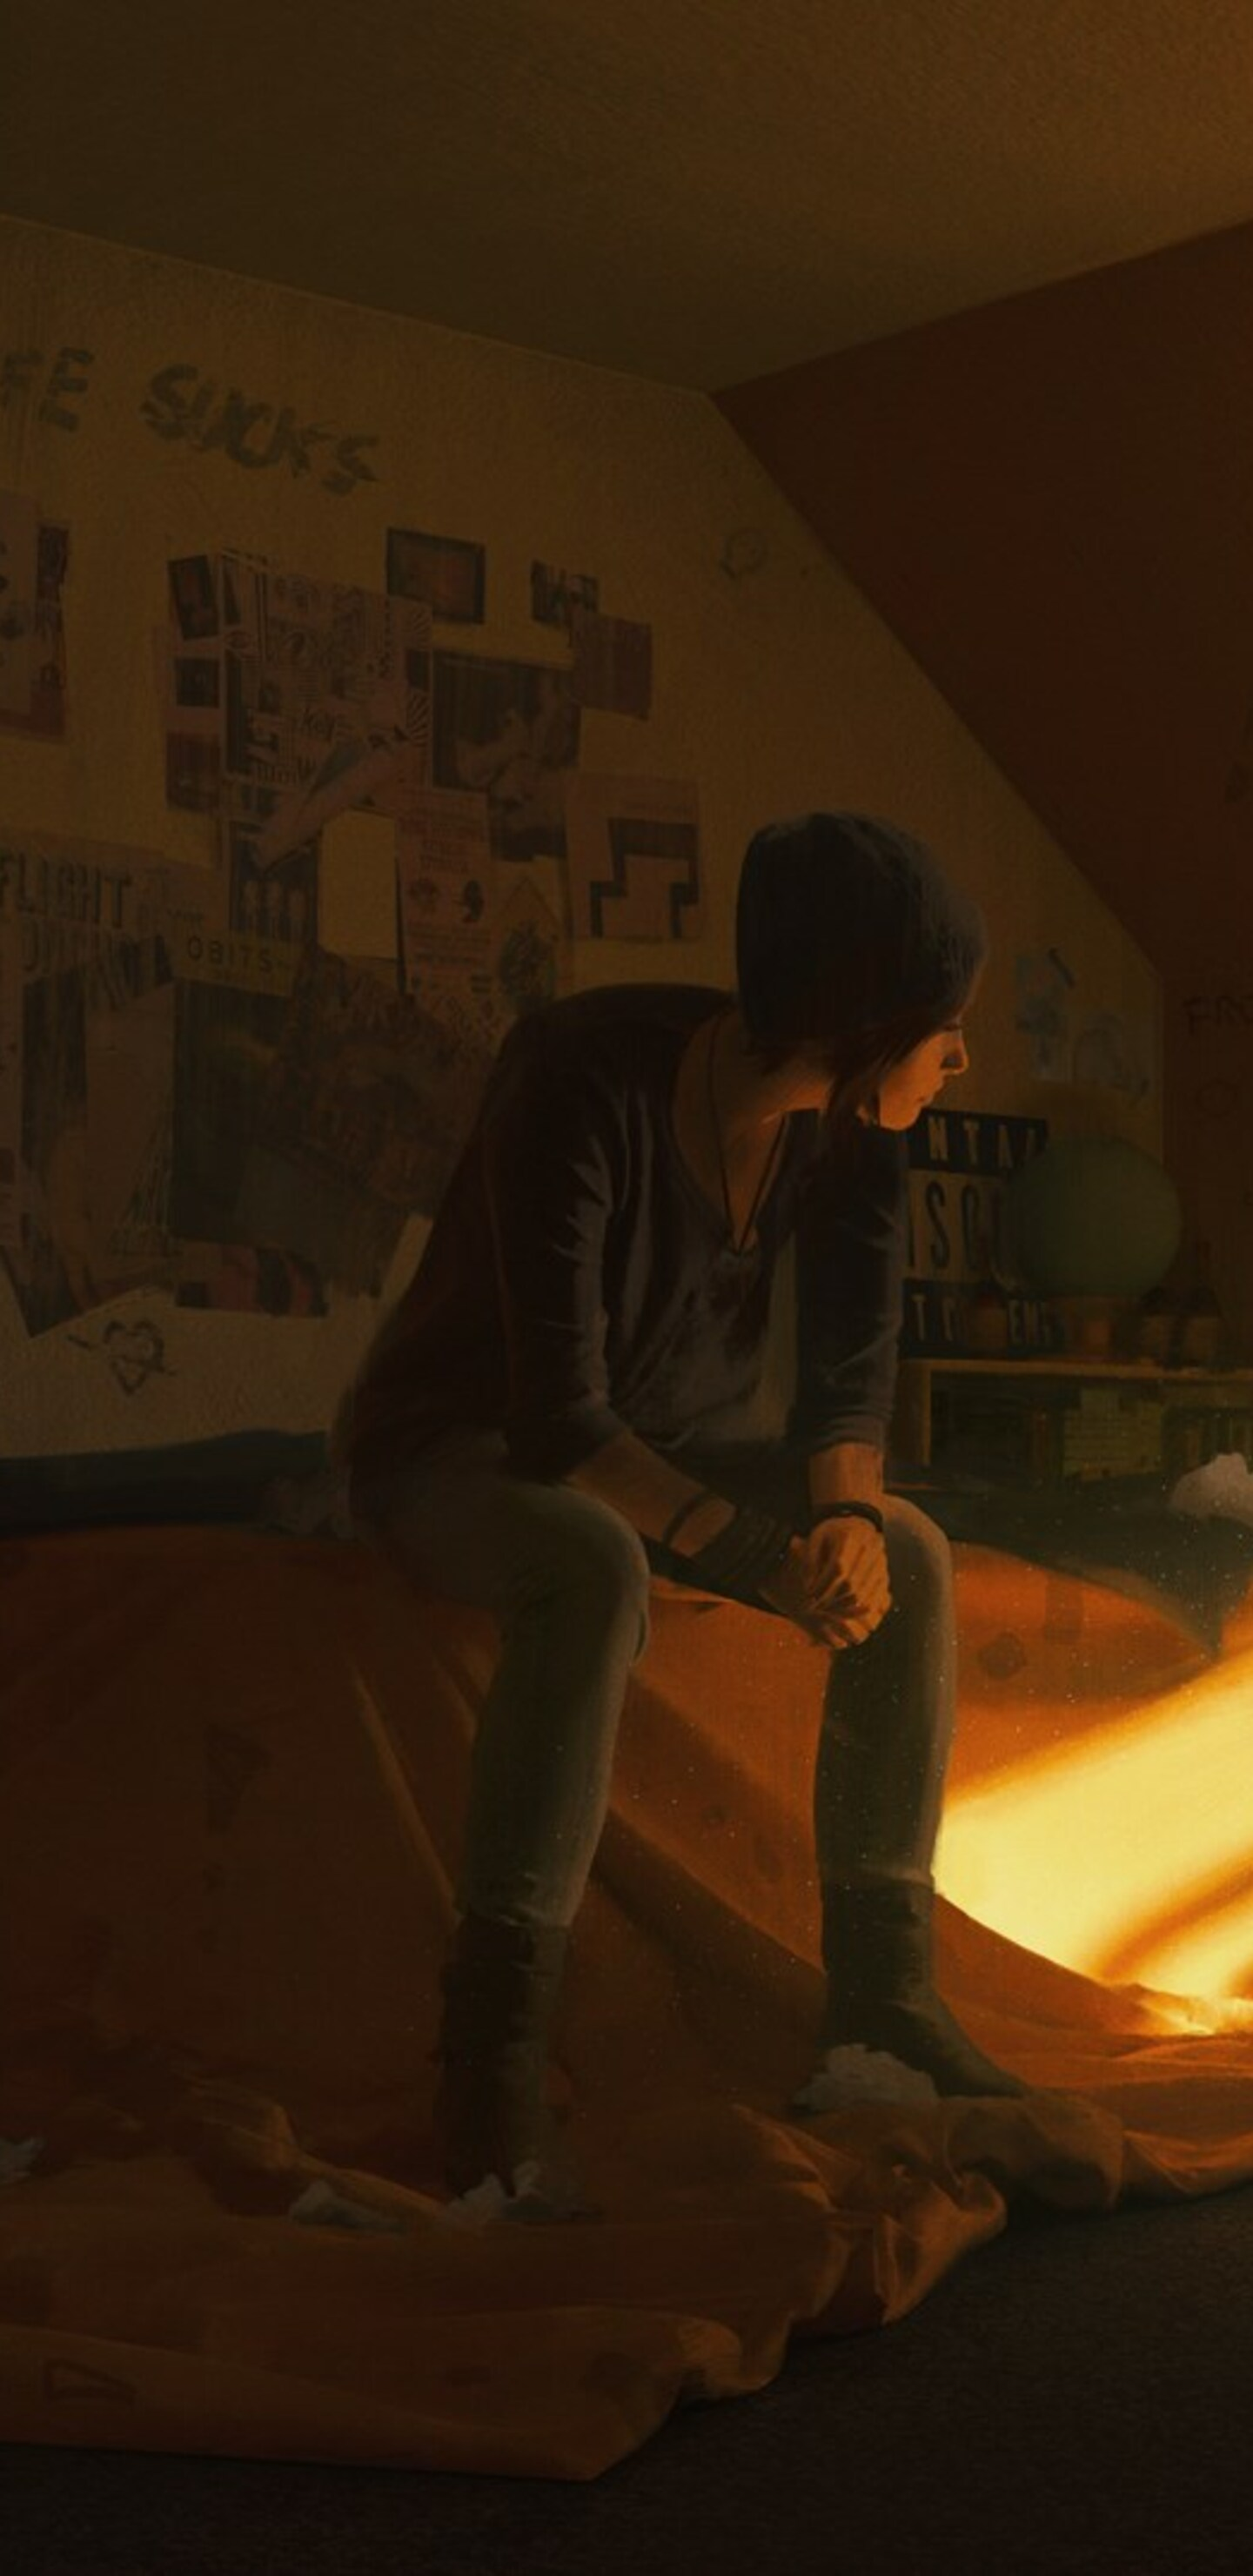 1440x2960 Life Is Strange Video Game Samsung Galaxy Note 9 8 S9 S8